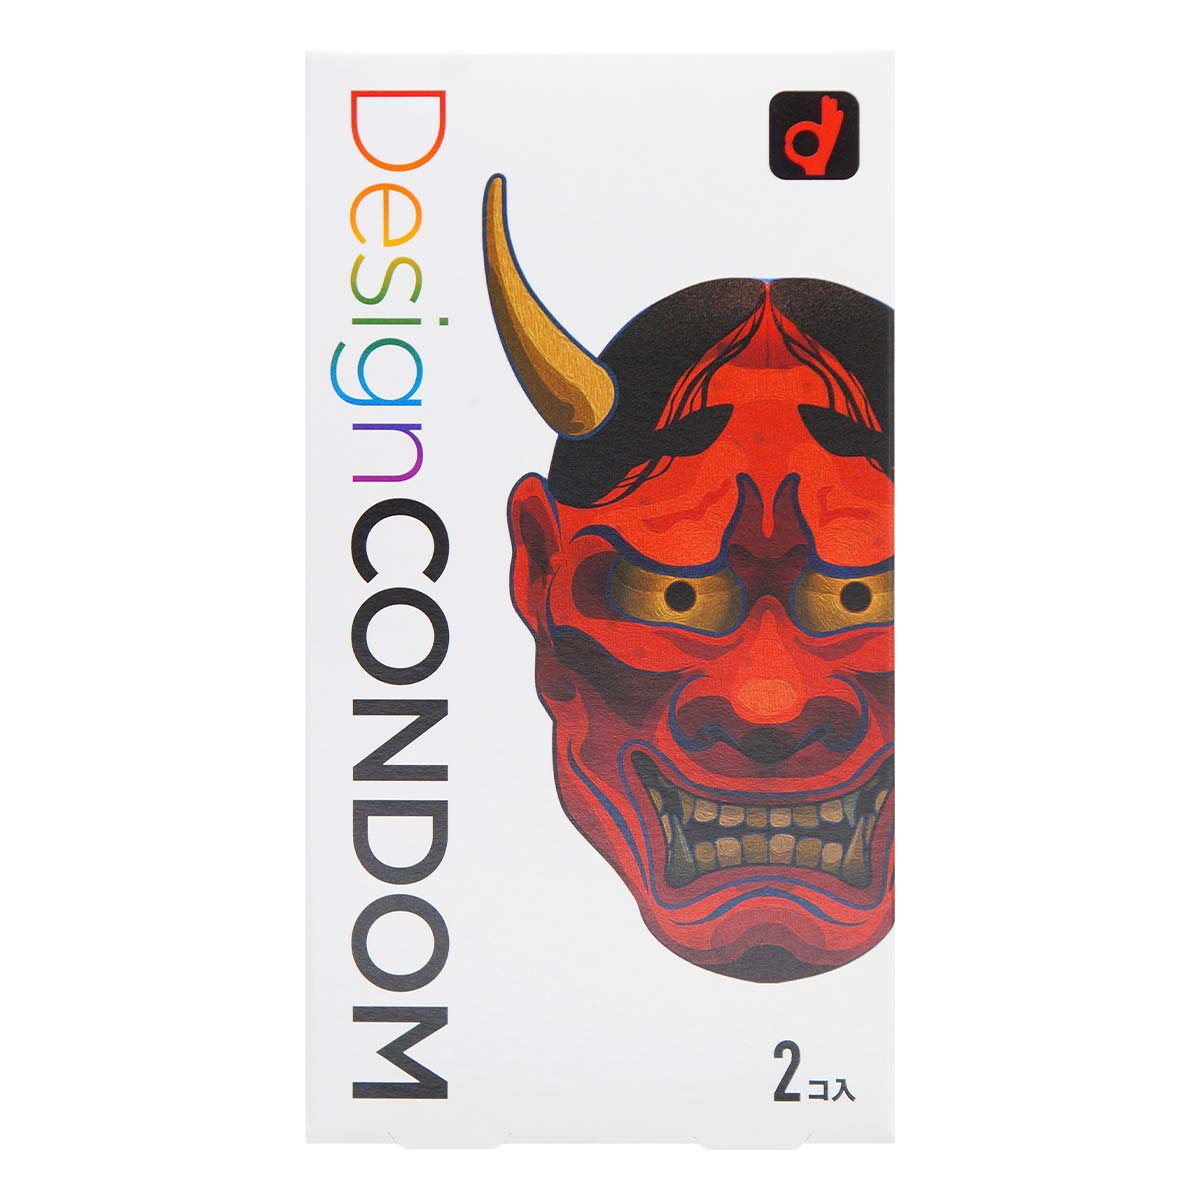 Okamoto HANNYA Design Condom (Japan Edition) 2 pieces Latex Condom